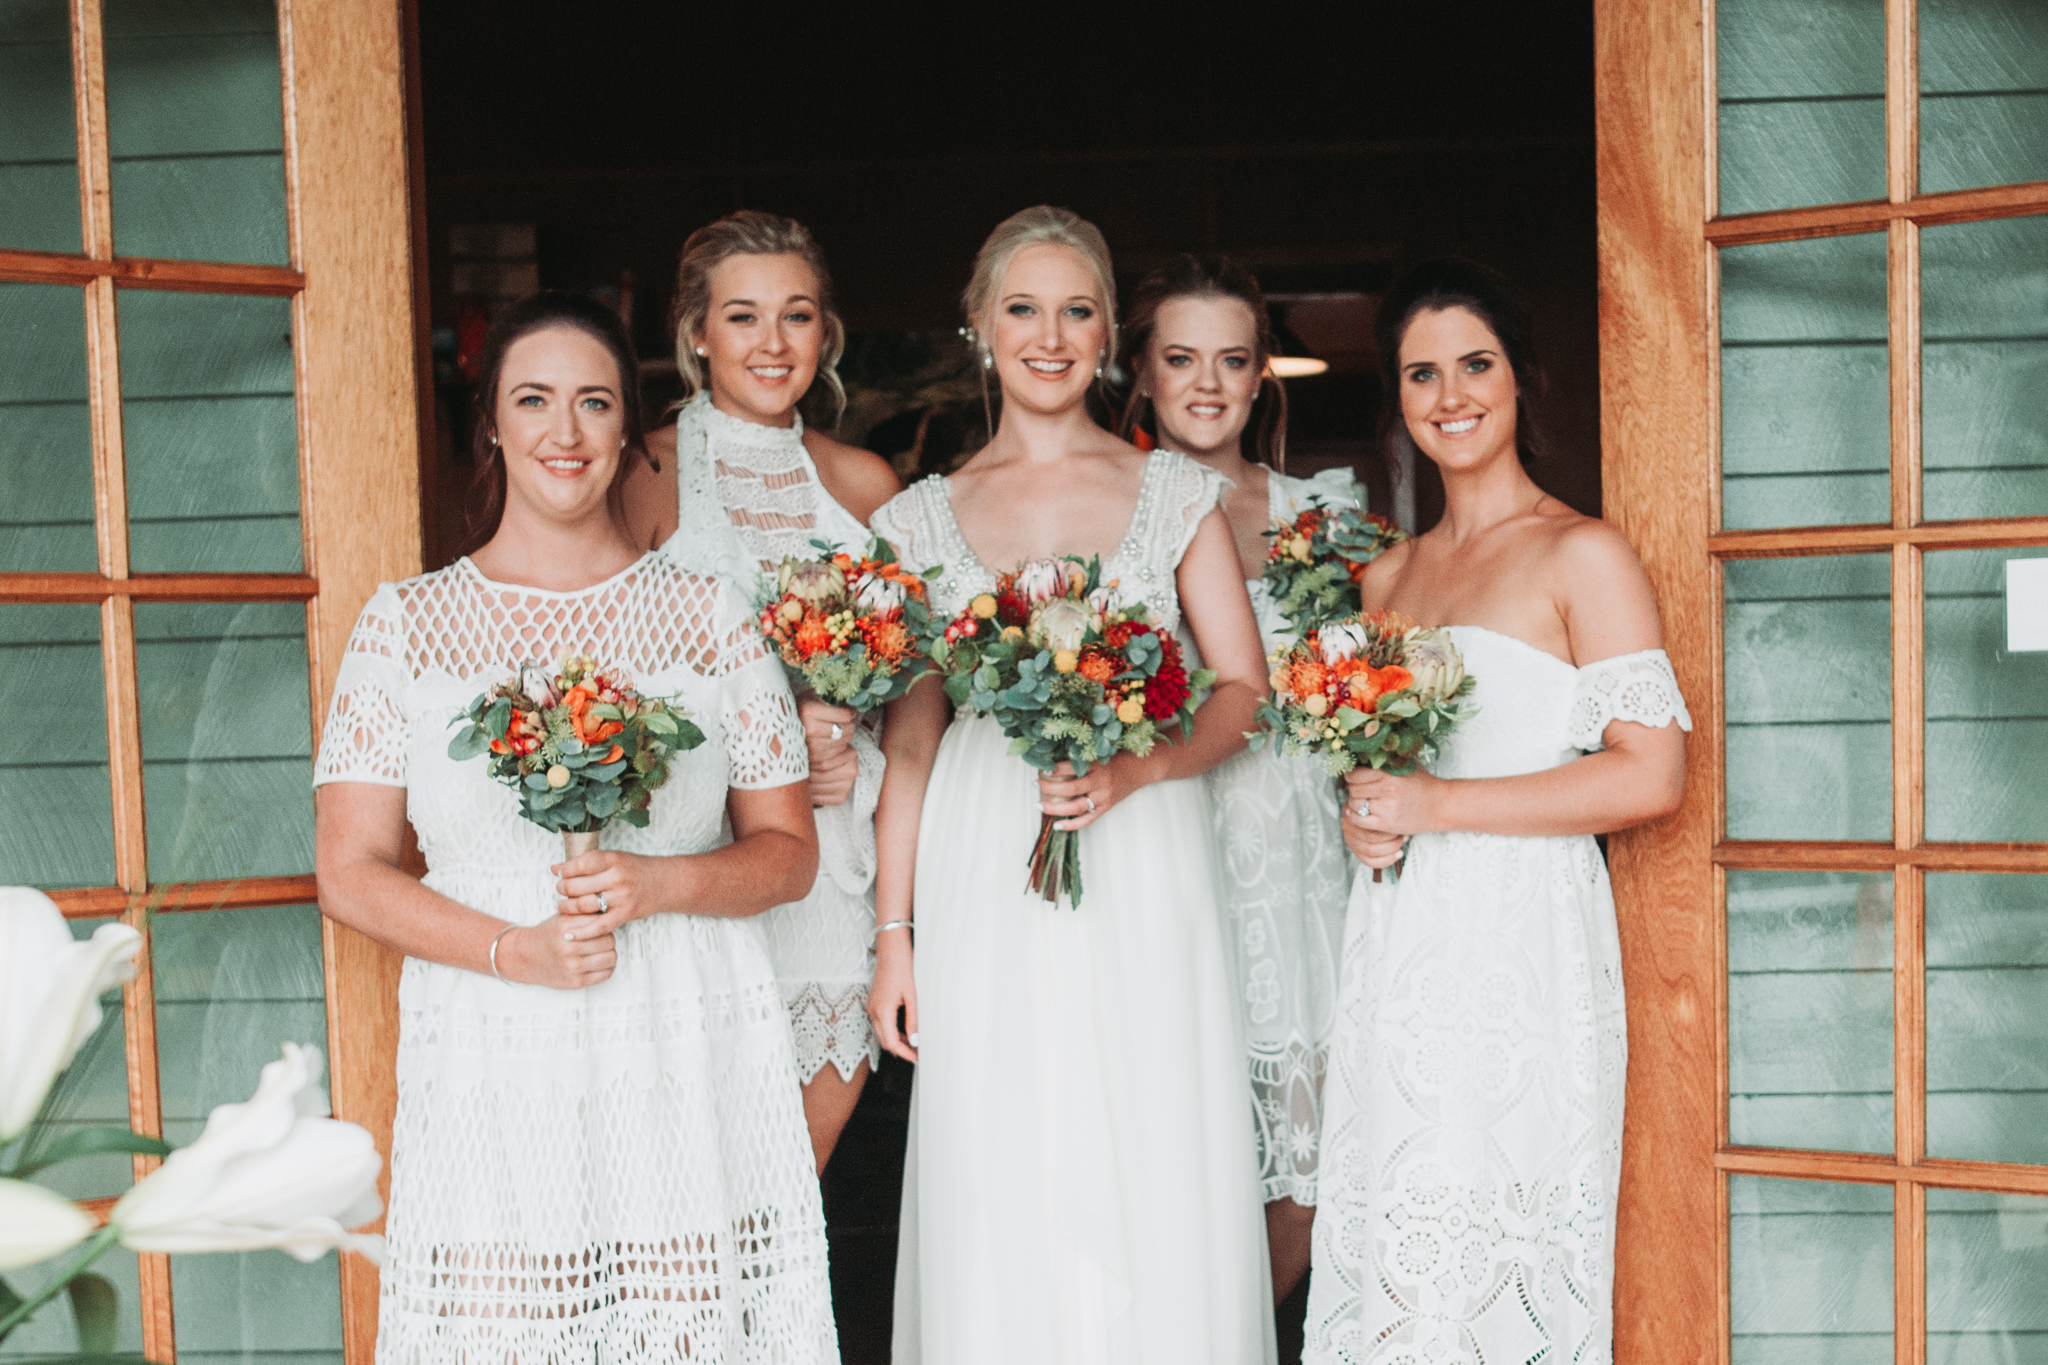 Mixmatched boho bridesmaids, Native bouquets, Anna Campbell Dress, faux flowers image by  LOVELENSCAPES WEDDING PHOTOGRAPHY – BROCKHURST FARM WEDDING #bloominglovelybouquets